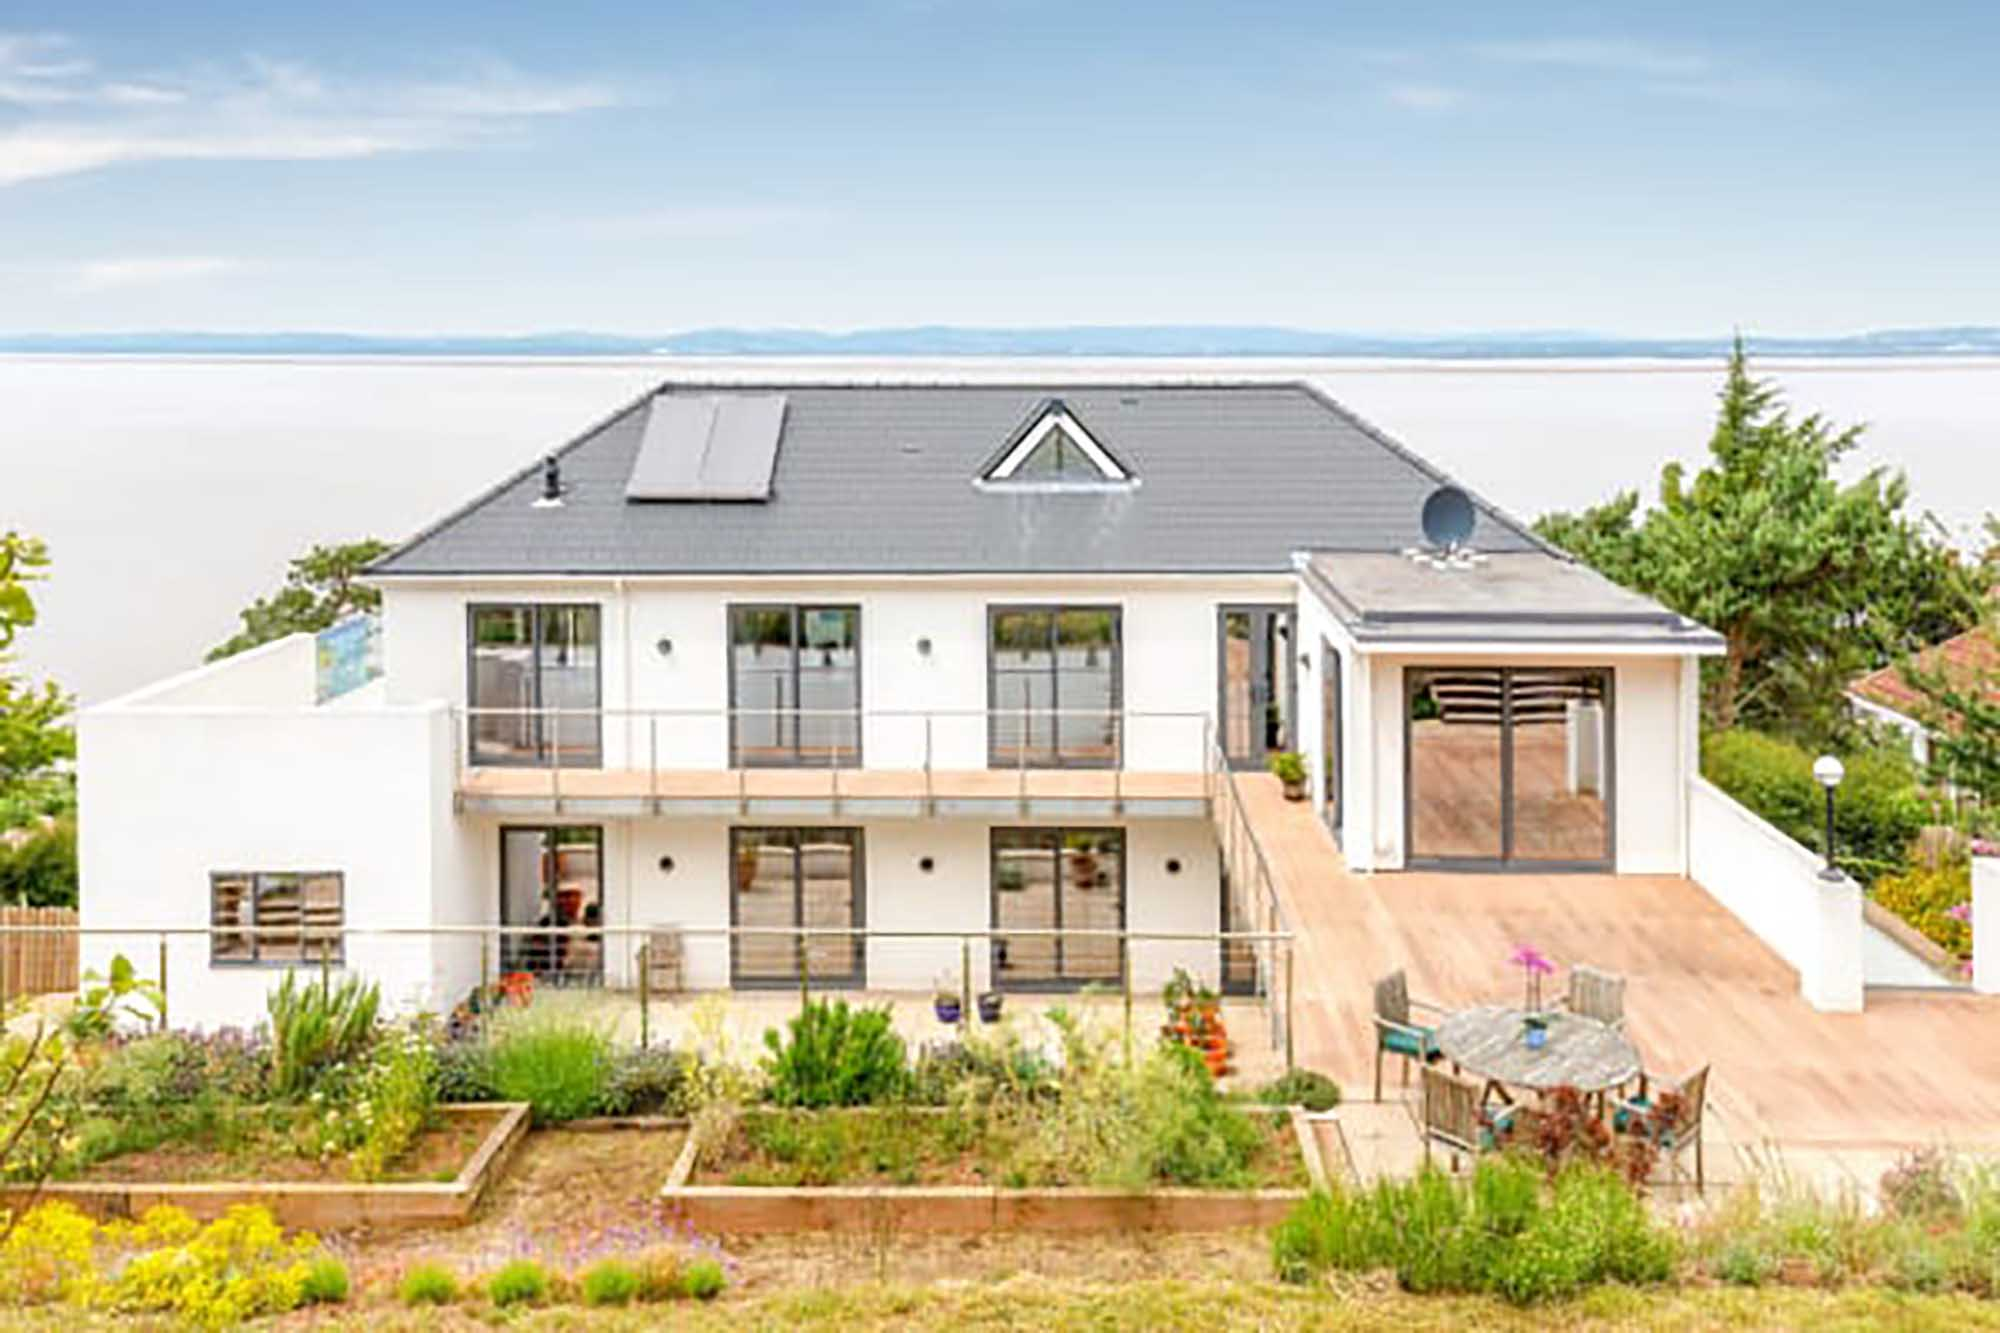 Near Bristol-Fabulous views in secluded location in Clevedon